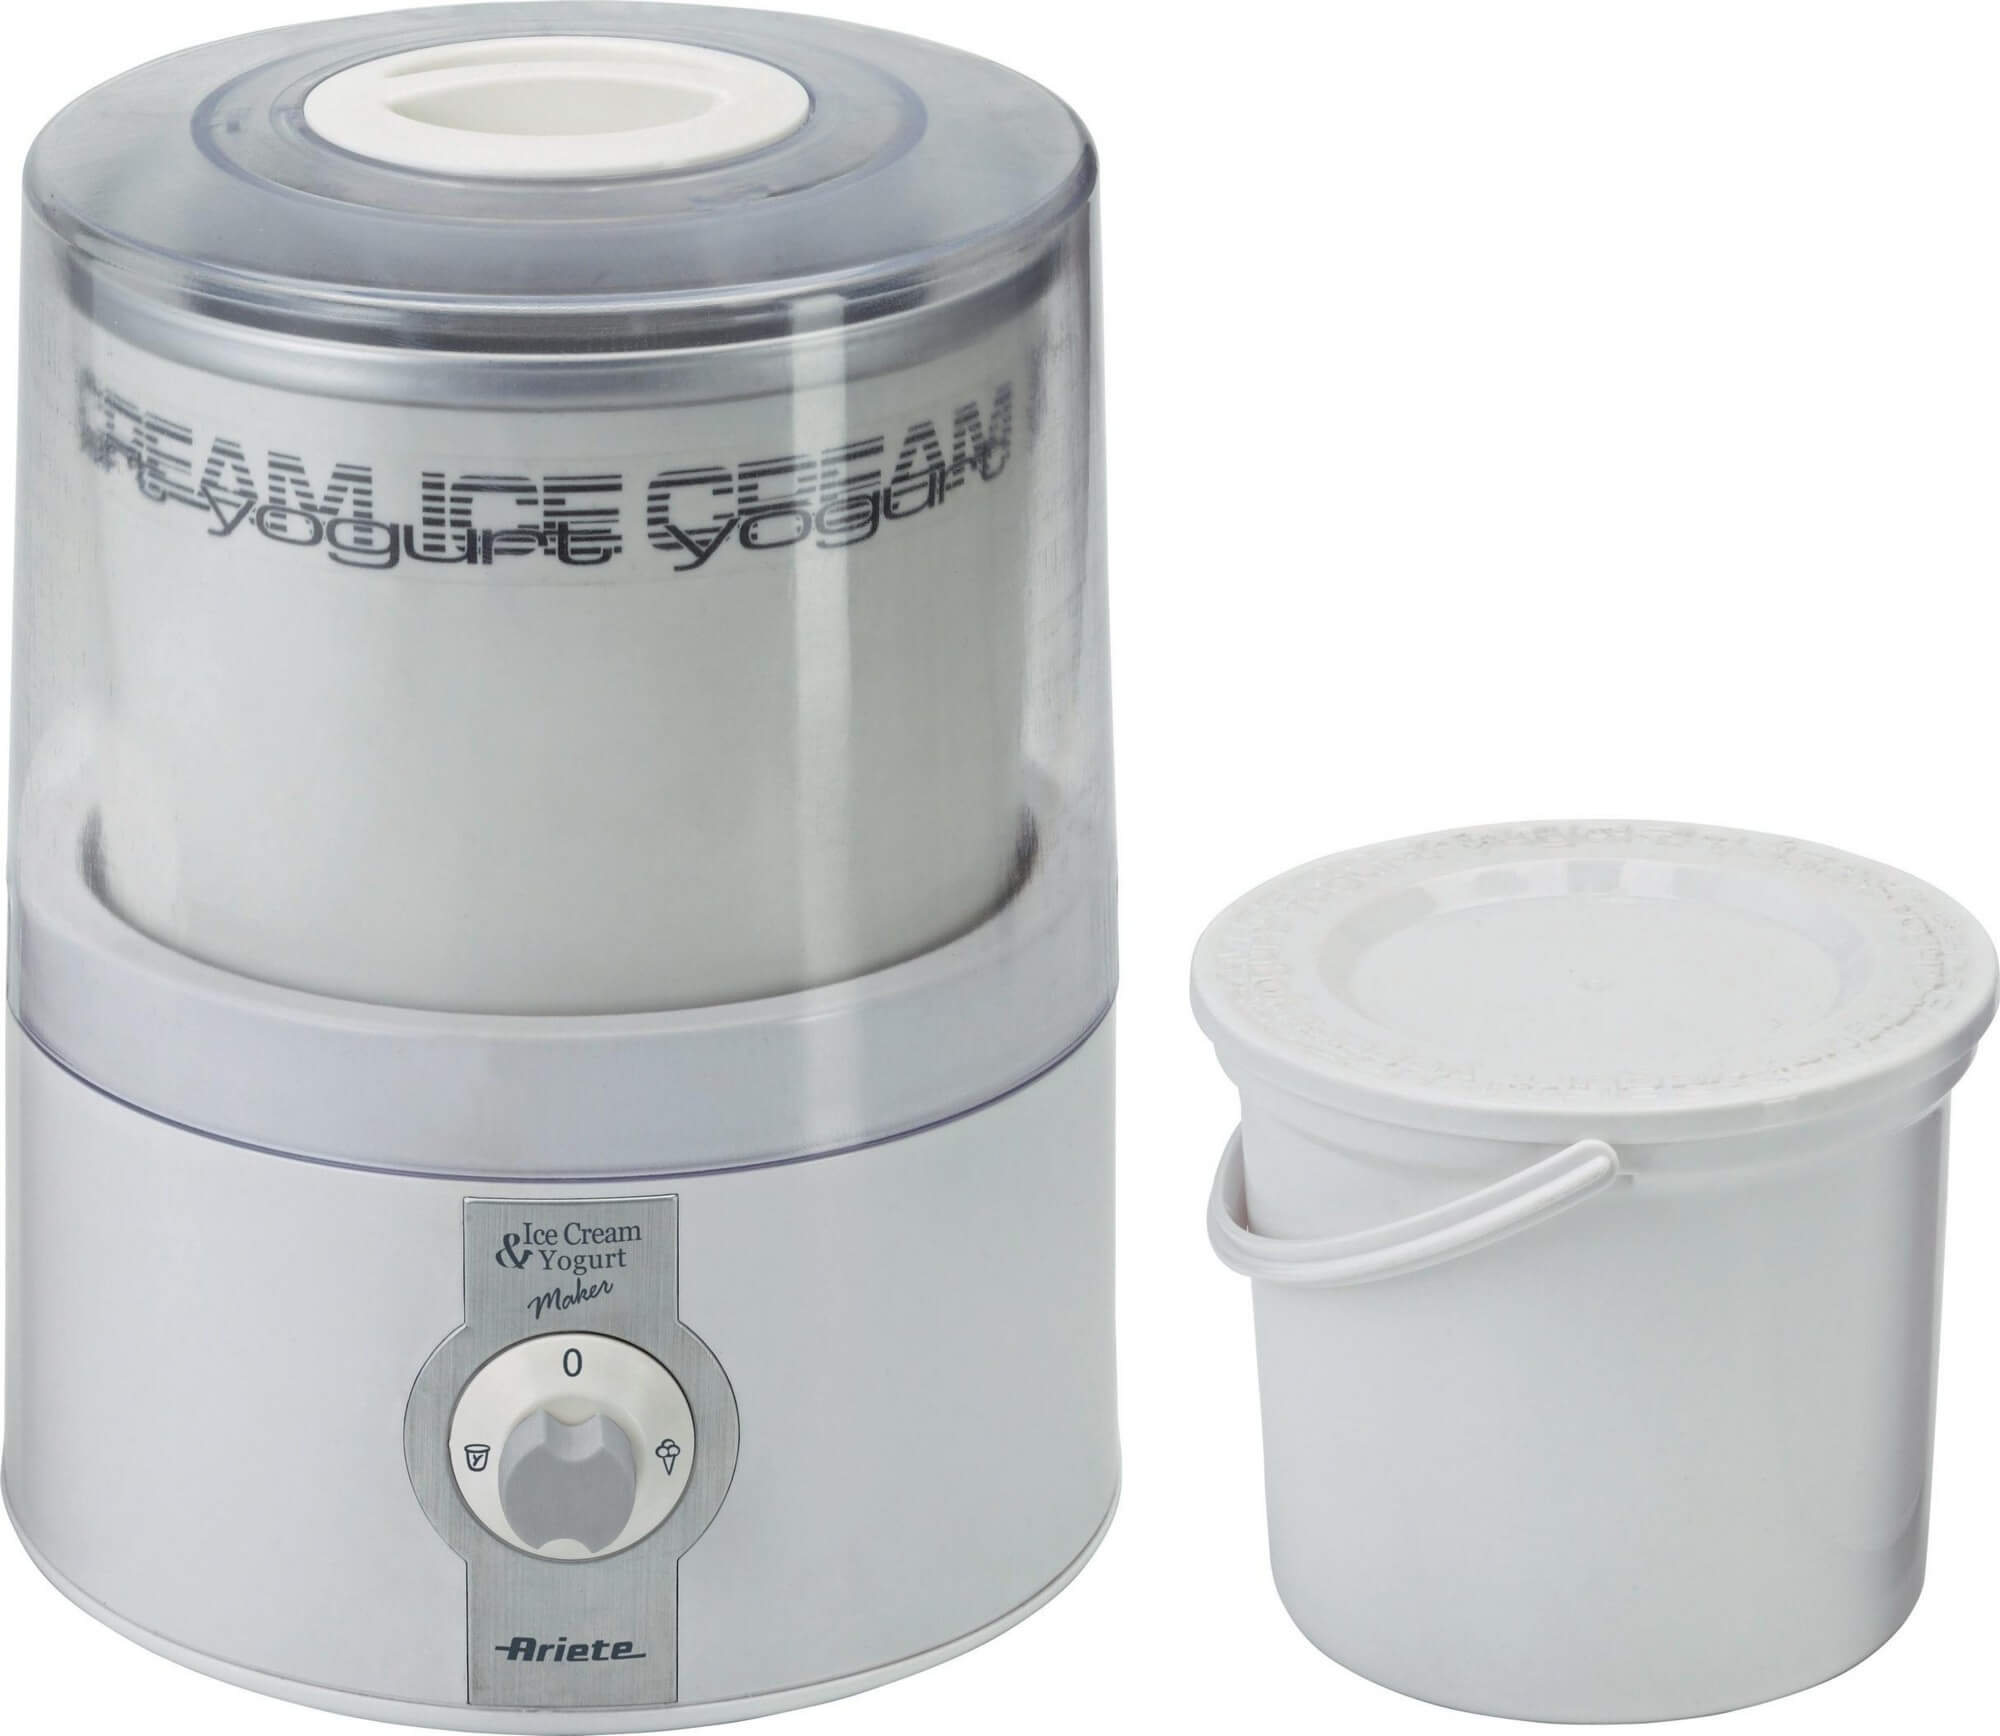 Ariete Ice cream & Yogurt maker